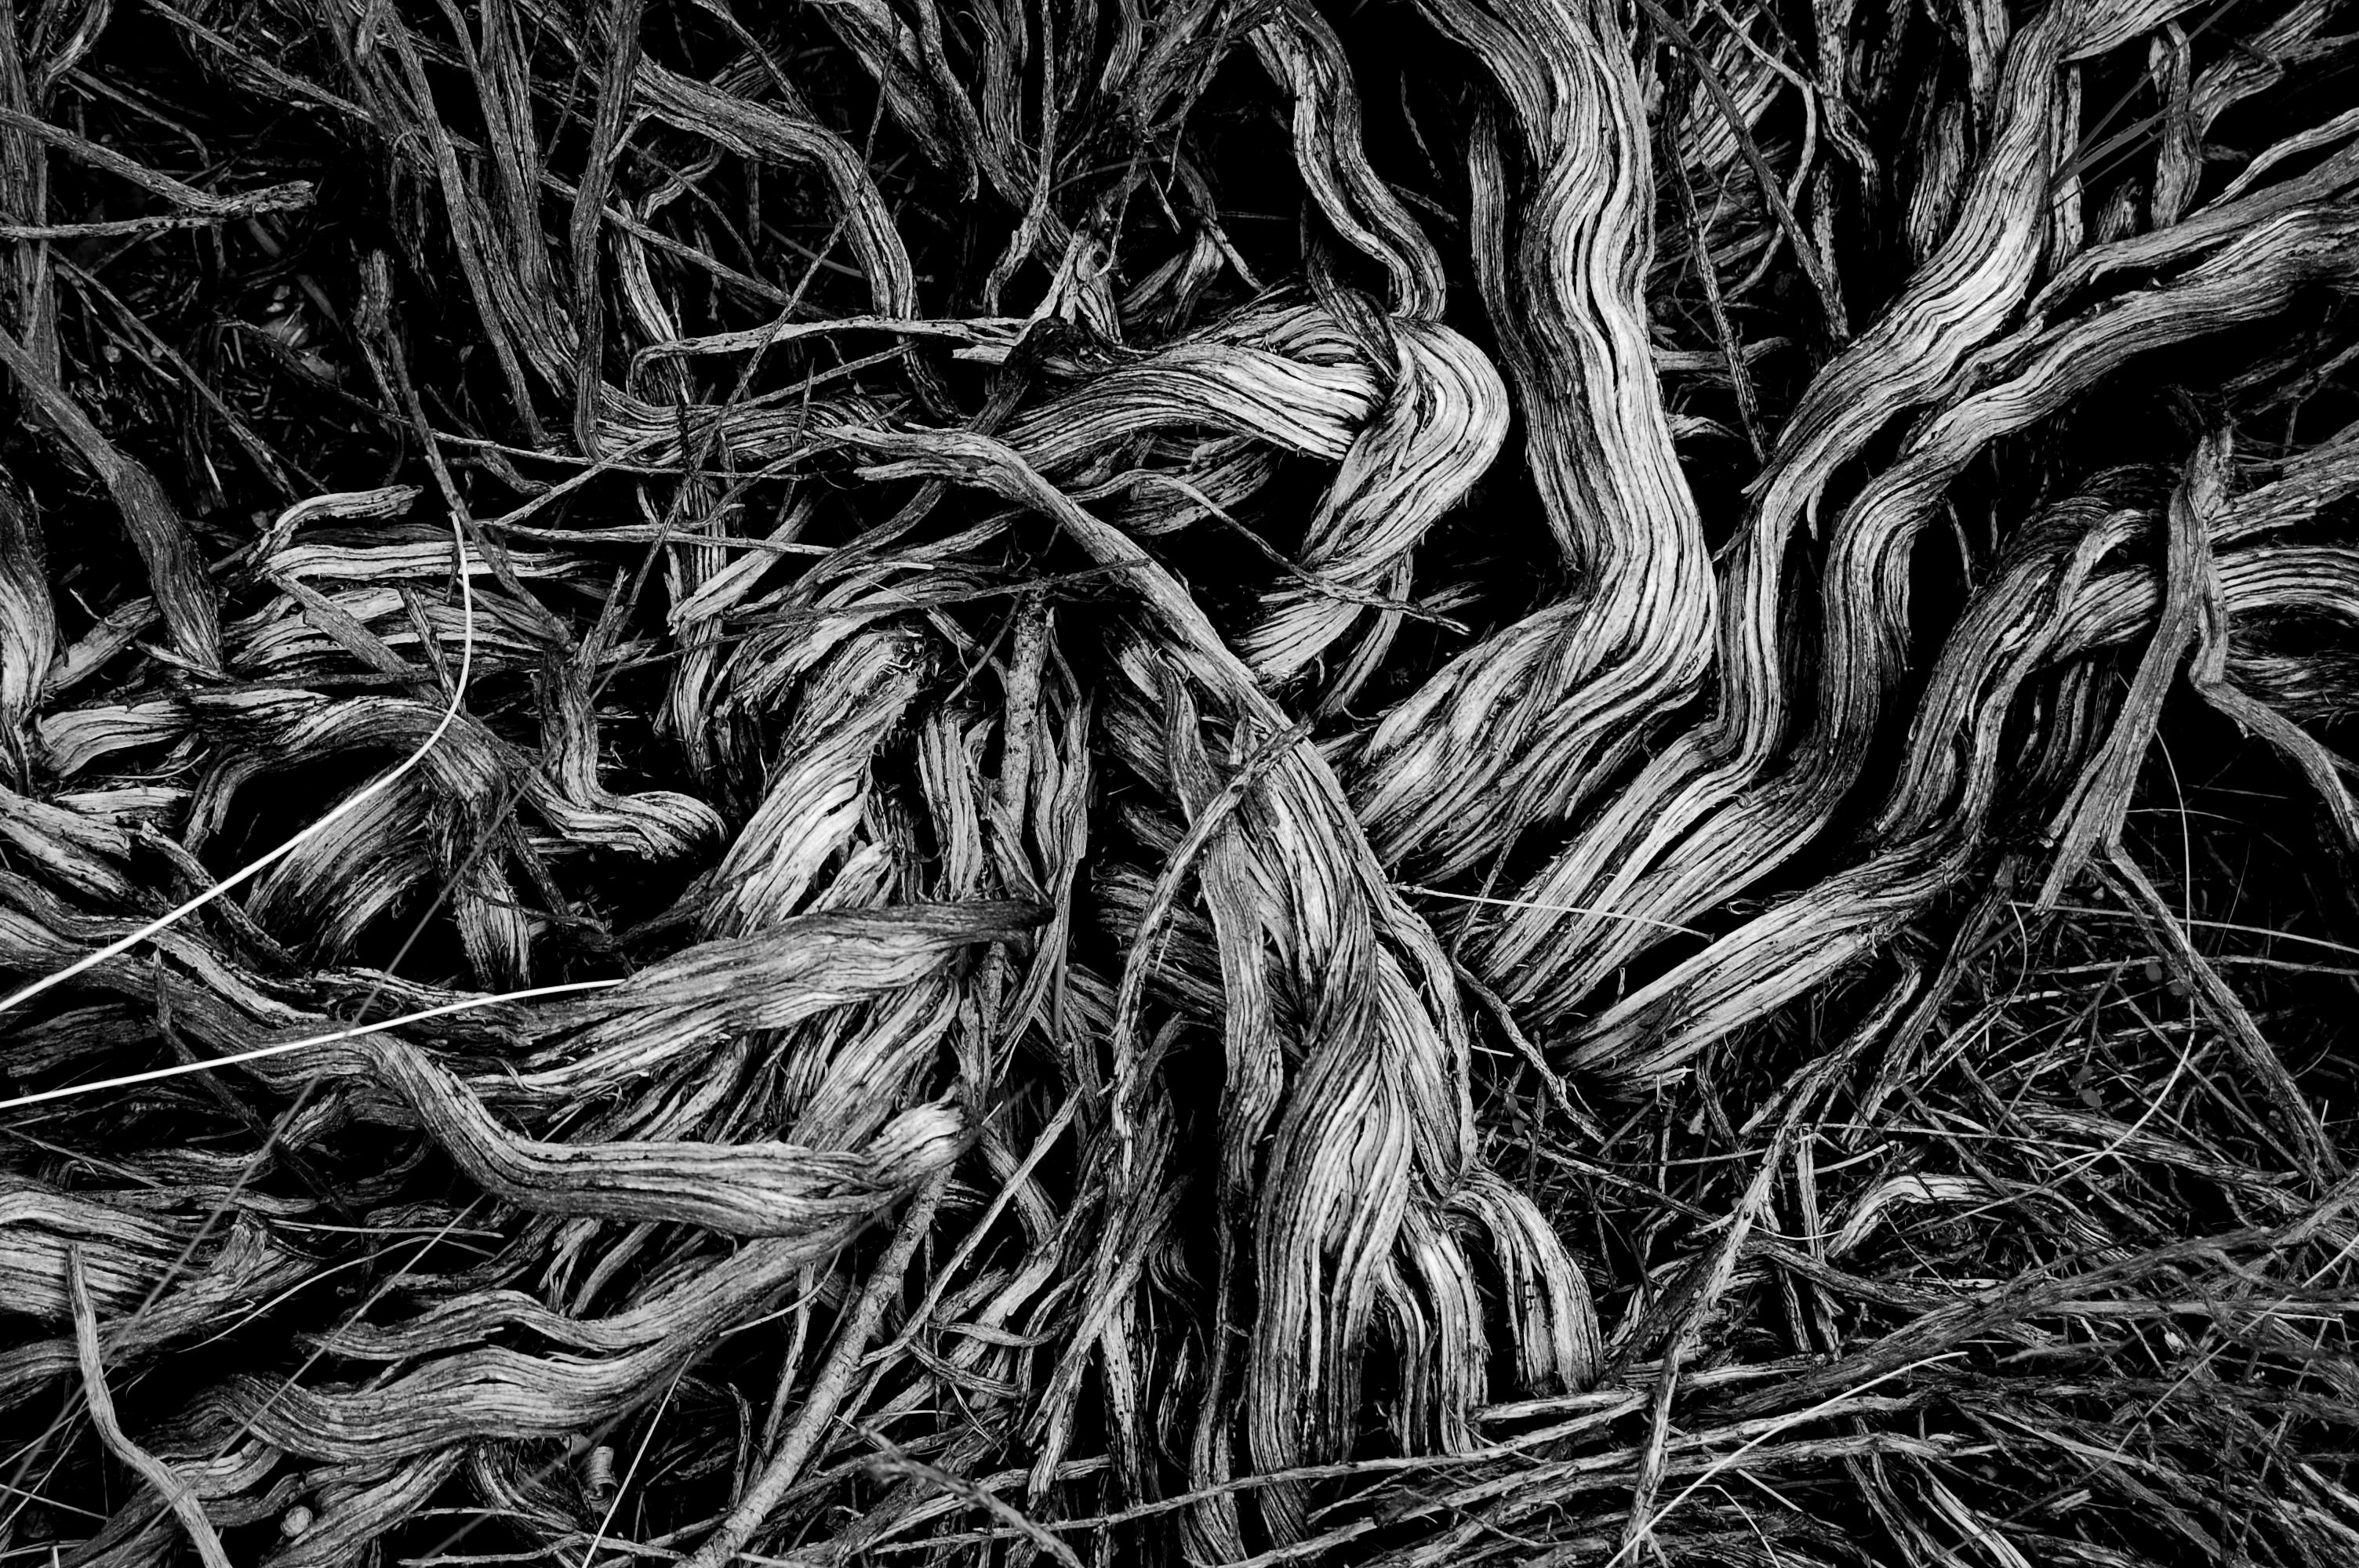 grayscale photograph of grass